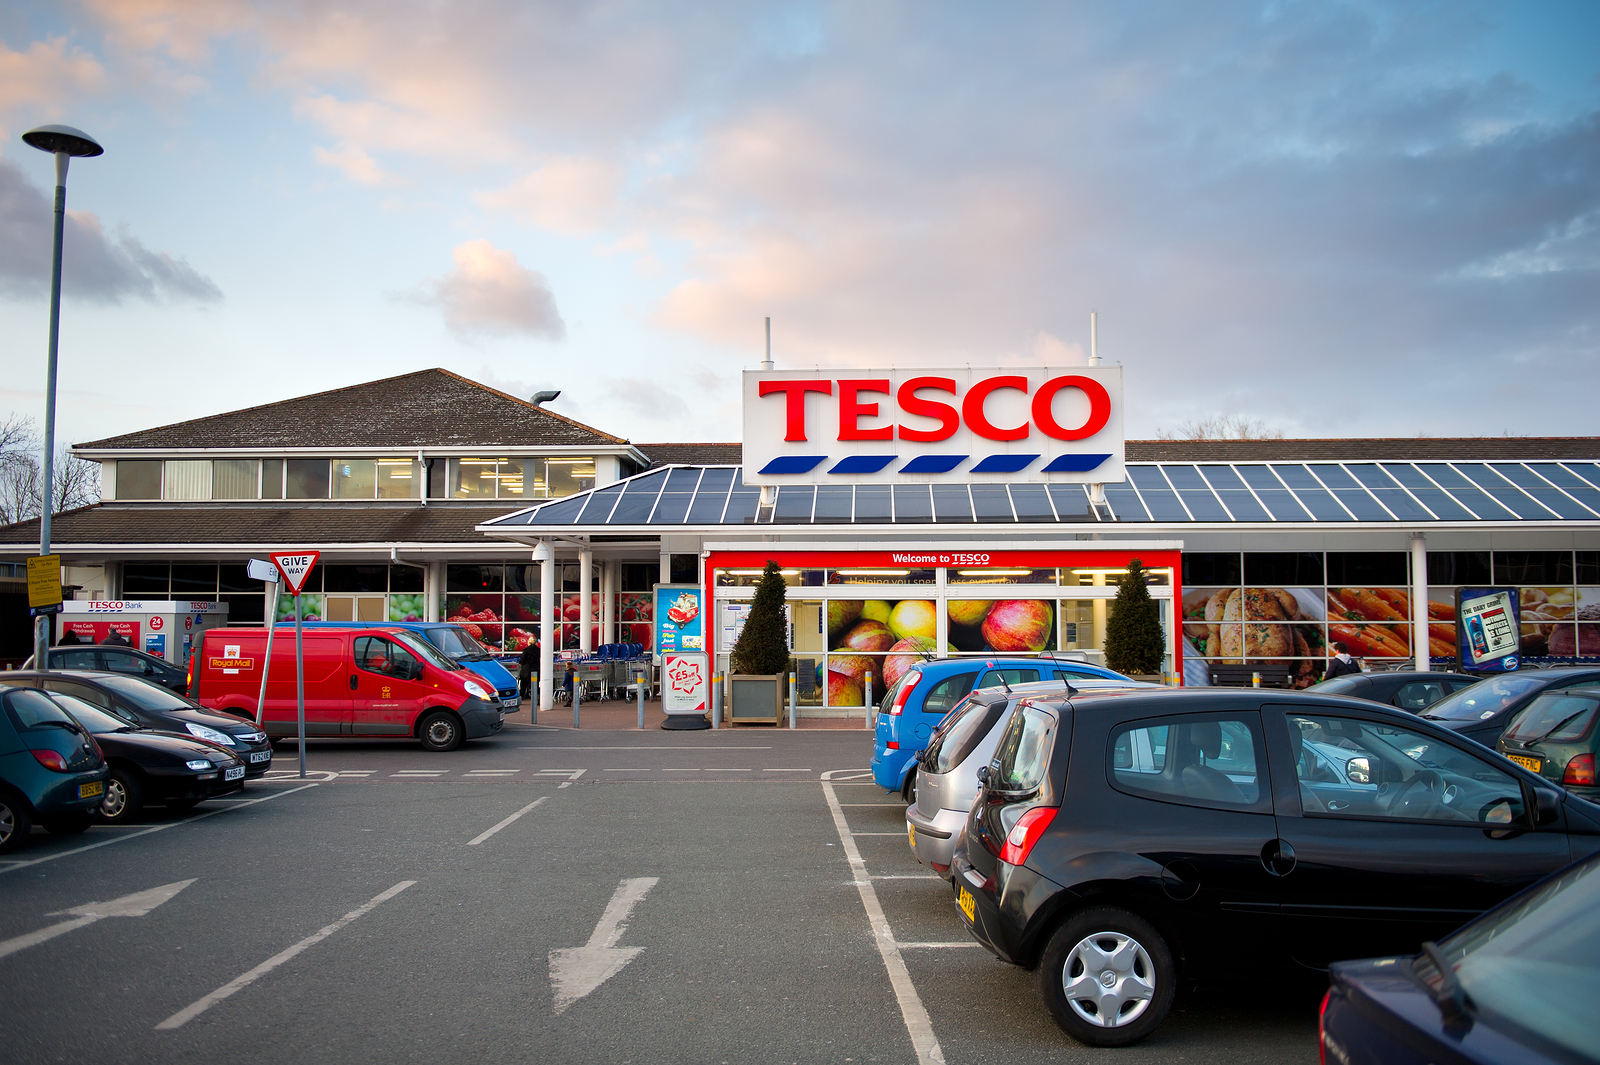 Denbigh Baker Expands Contract With Tesco